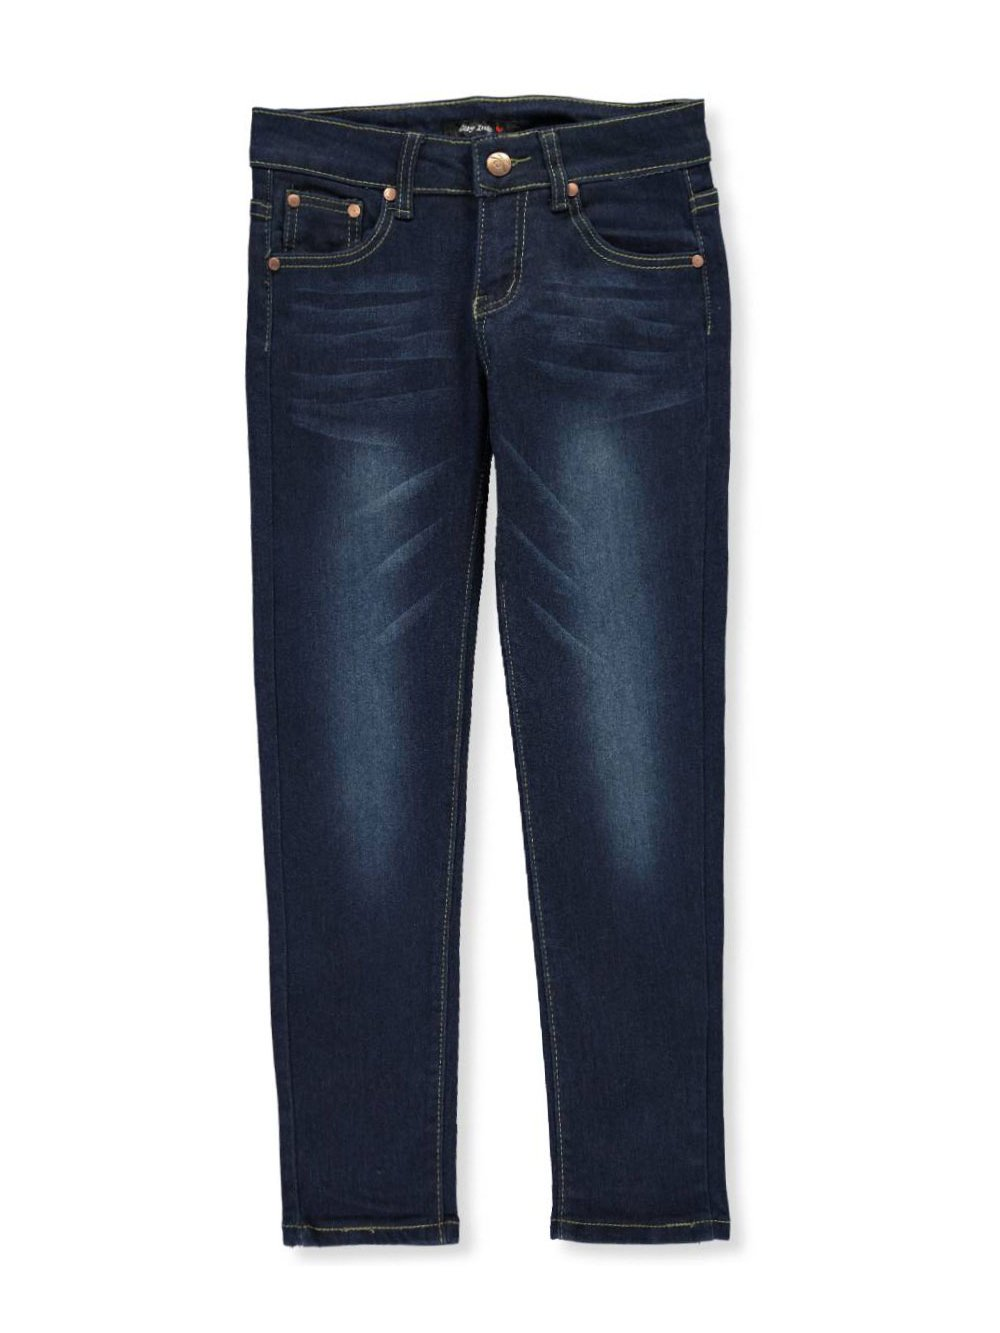 City Ink Girls' Jeans 4